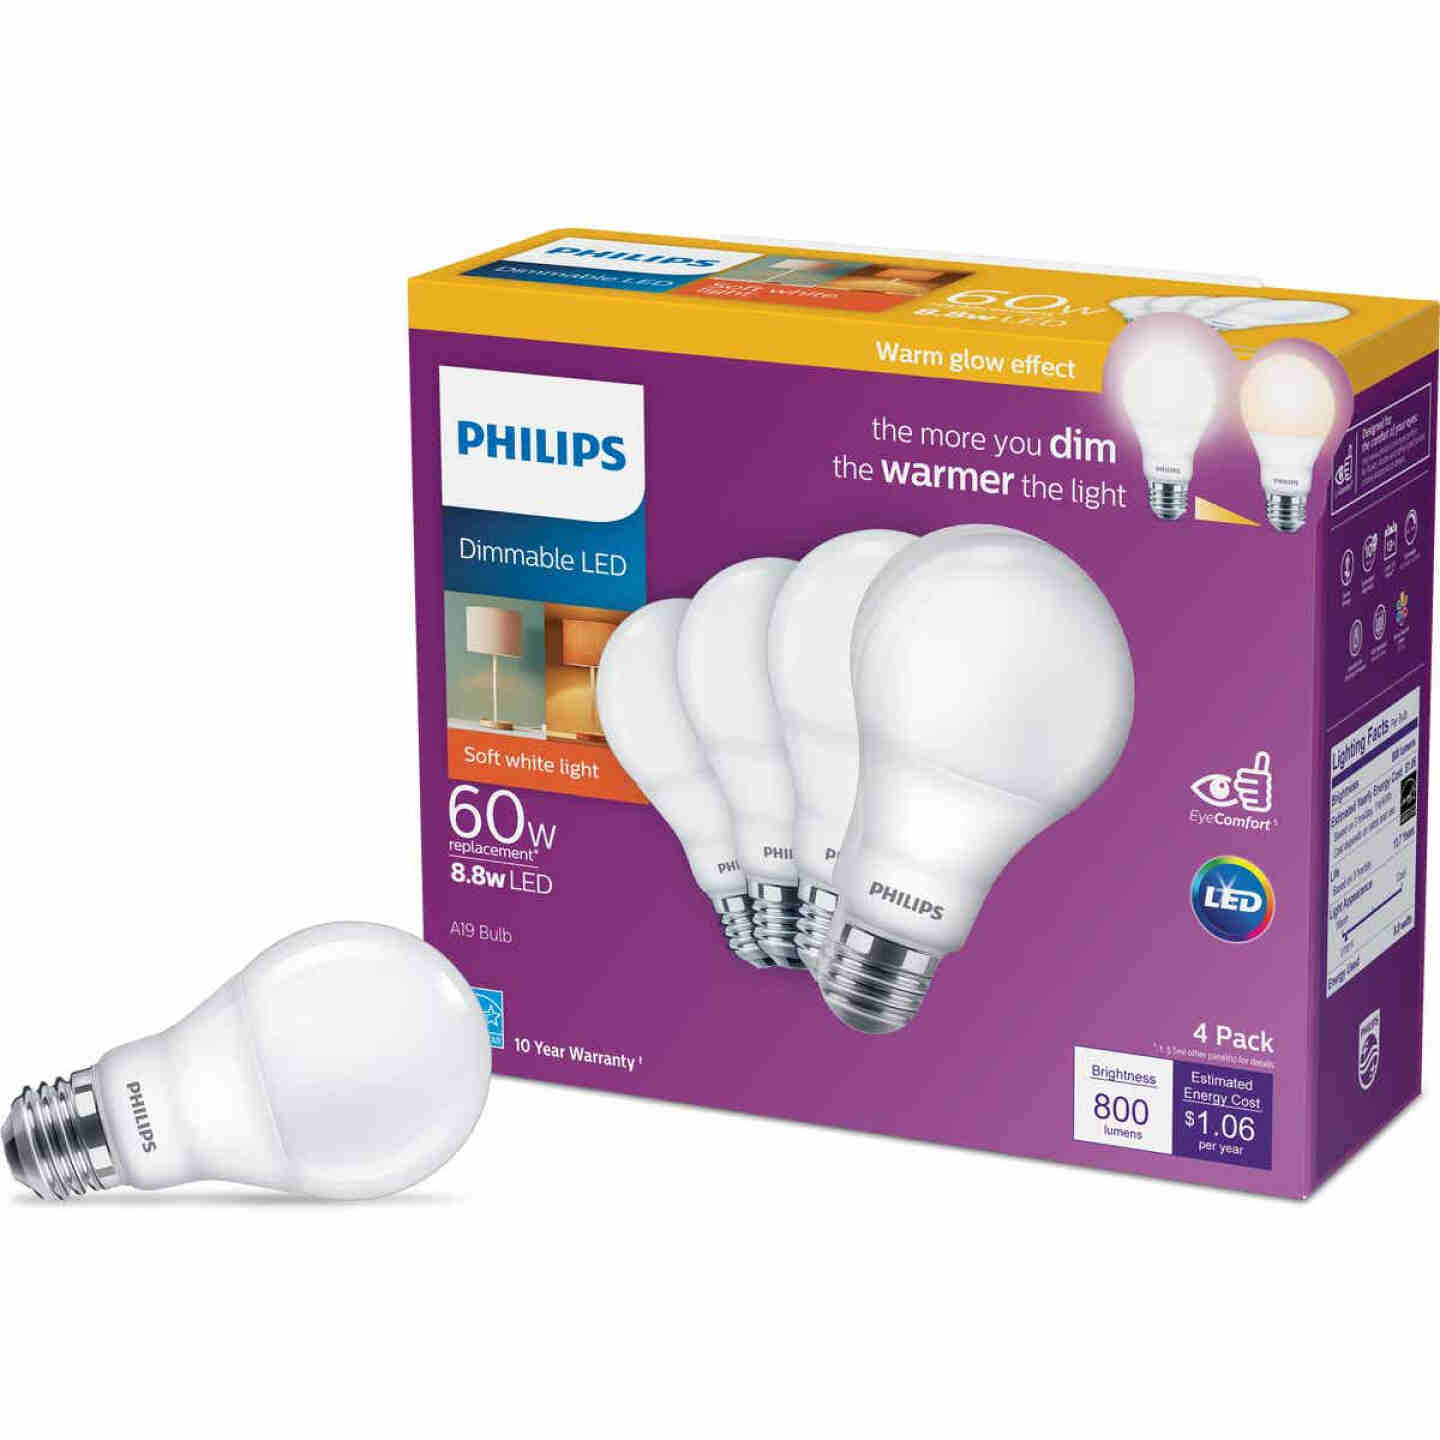 Philips Warm Glow 60W Equivalent Soft White A19 Medium Dimmable LED Light Bulb (4-Pack) Image 1